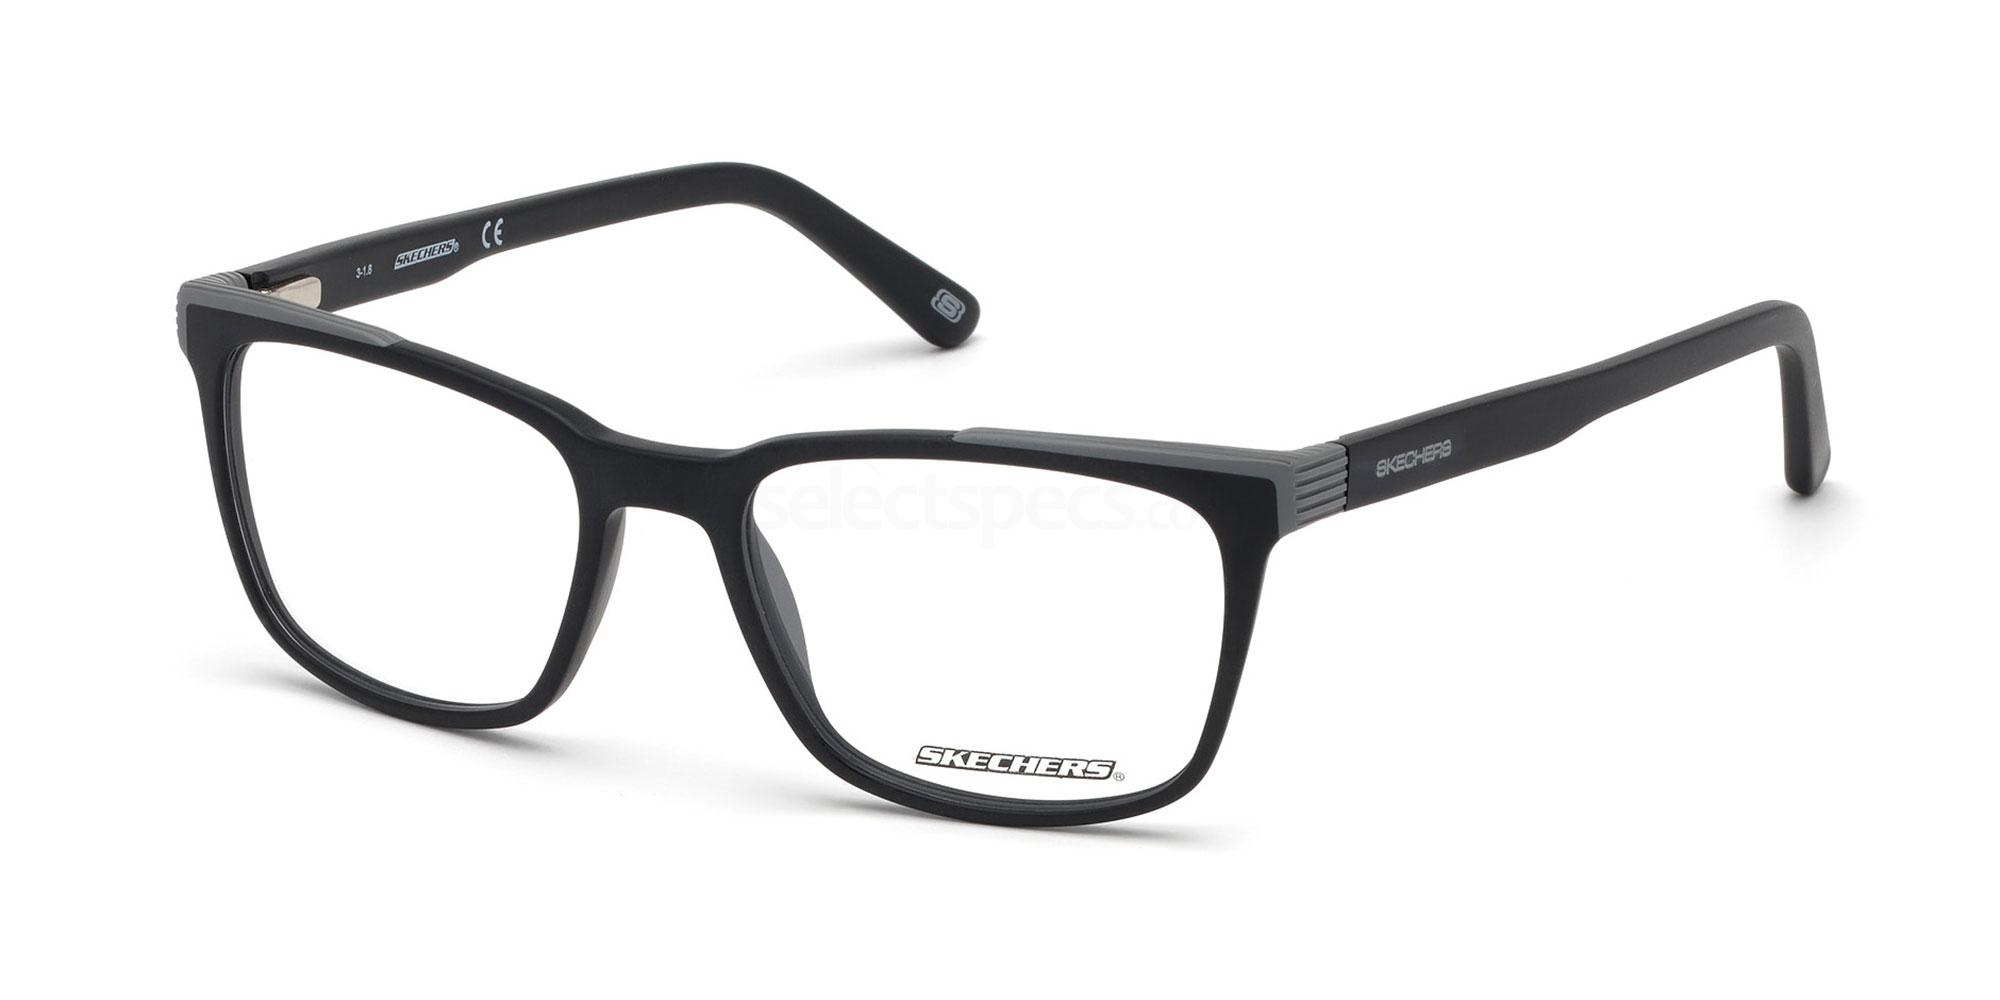 002 SE3227 Glasses, Skechers